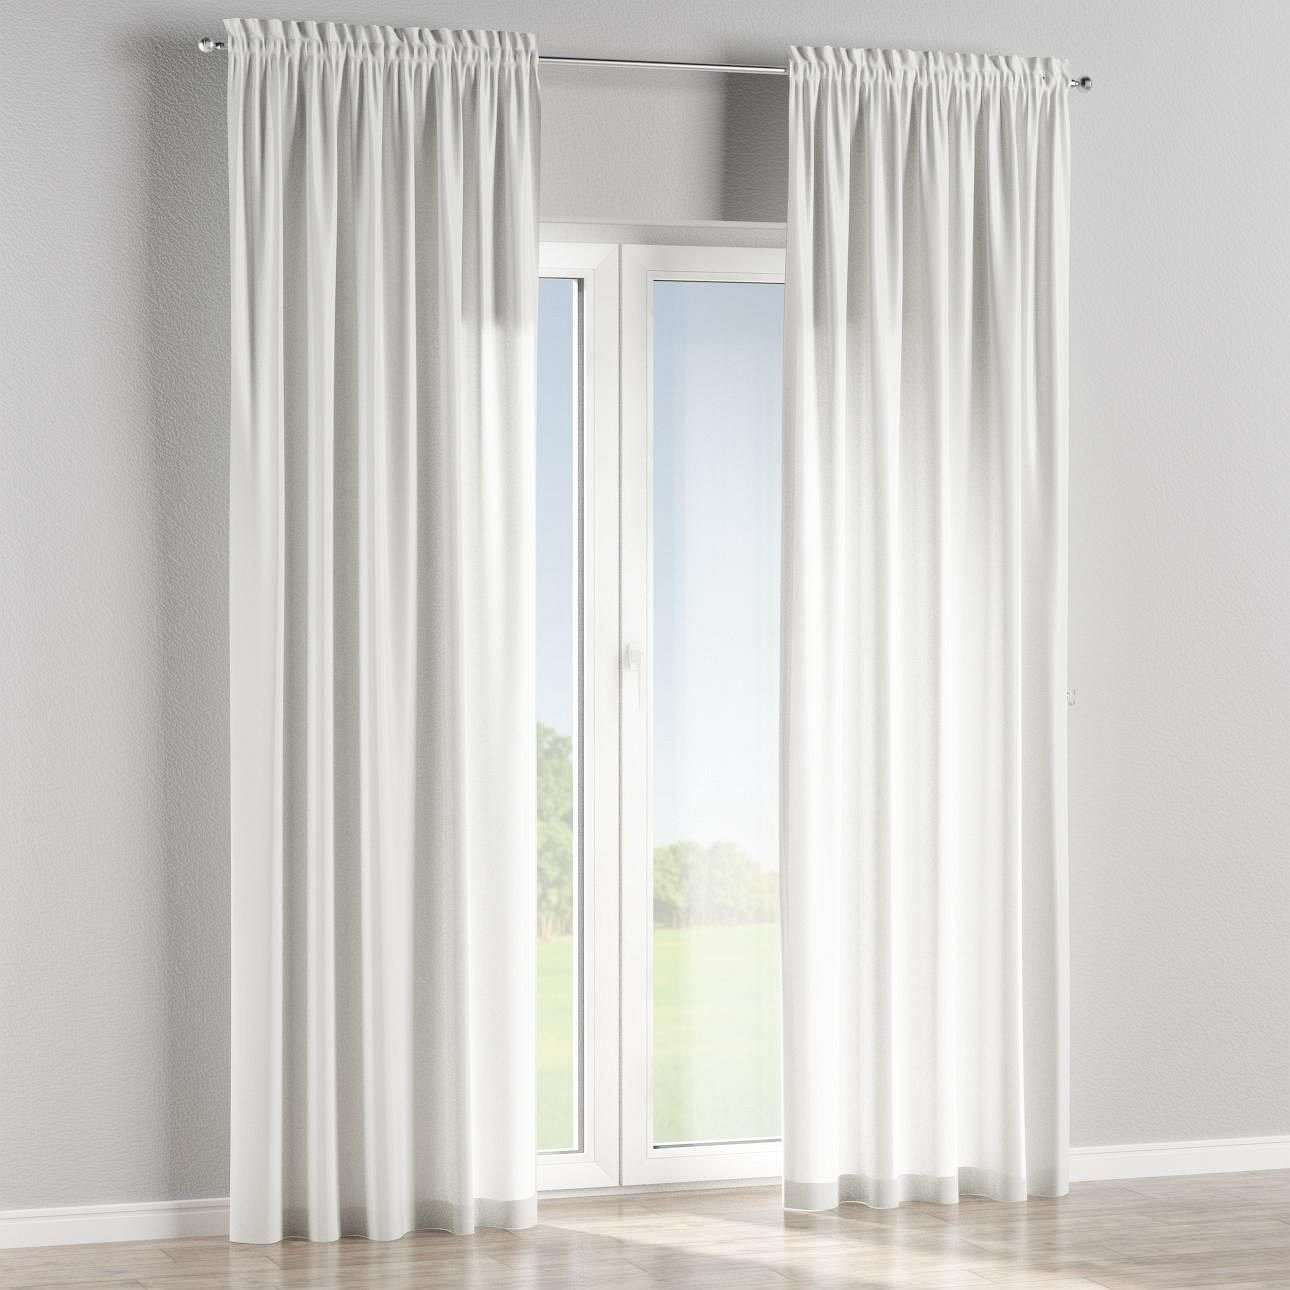 Slot and frill lined curtains in collection Fleur , fabric: 137-20